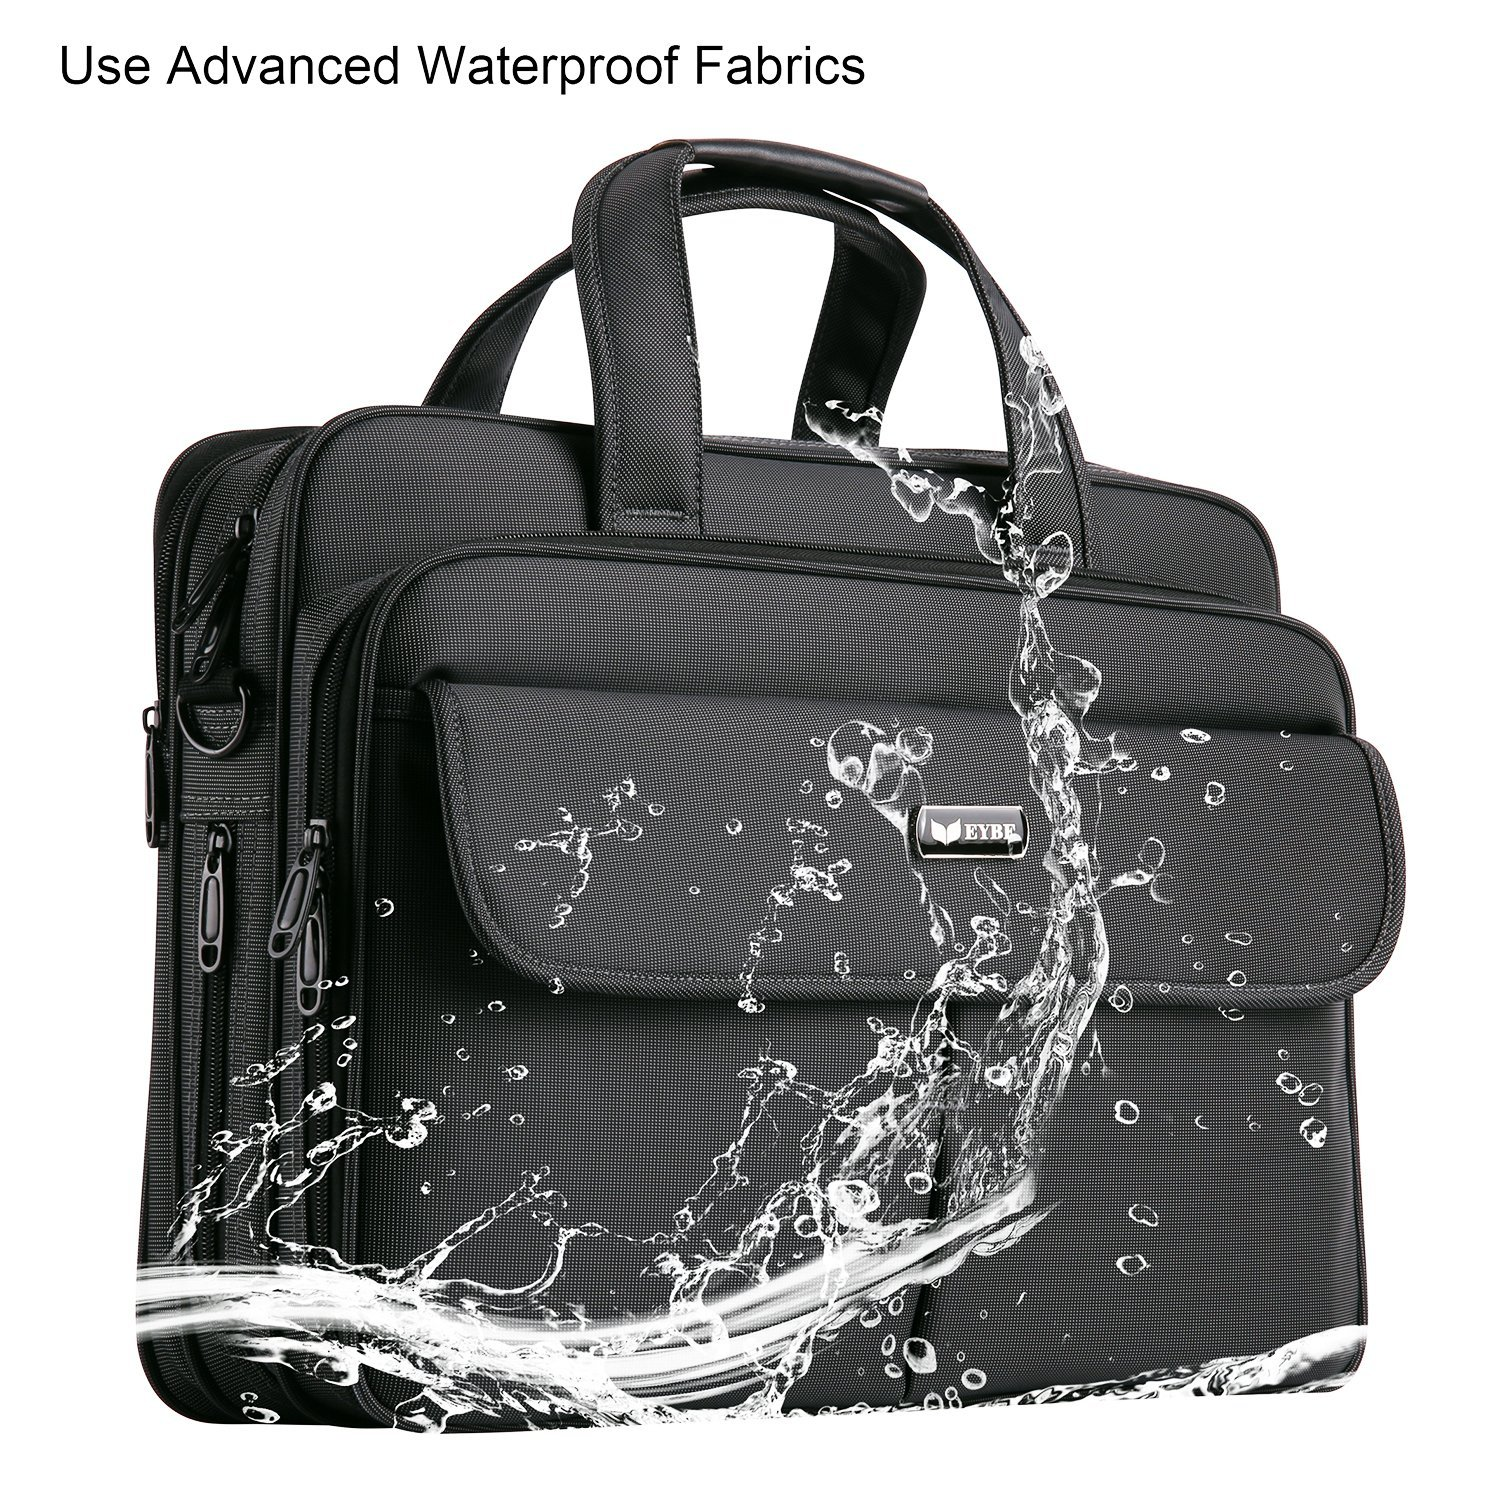 EYBF Laptop Bag 15.6 Inch, Expandable Travel Business Briefcase for Men & Women, Water Resistant Messenger Shoulder Bag with Organizer, Black by EYBF (Image #5)